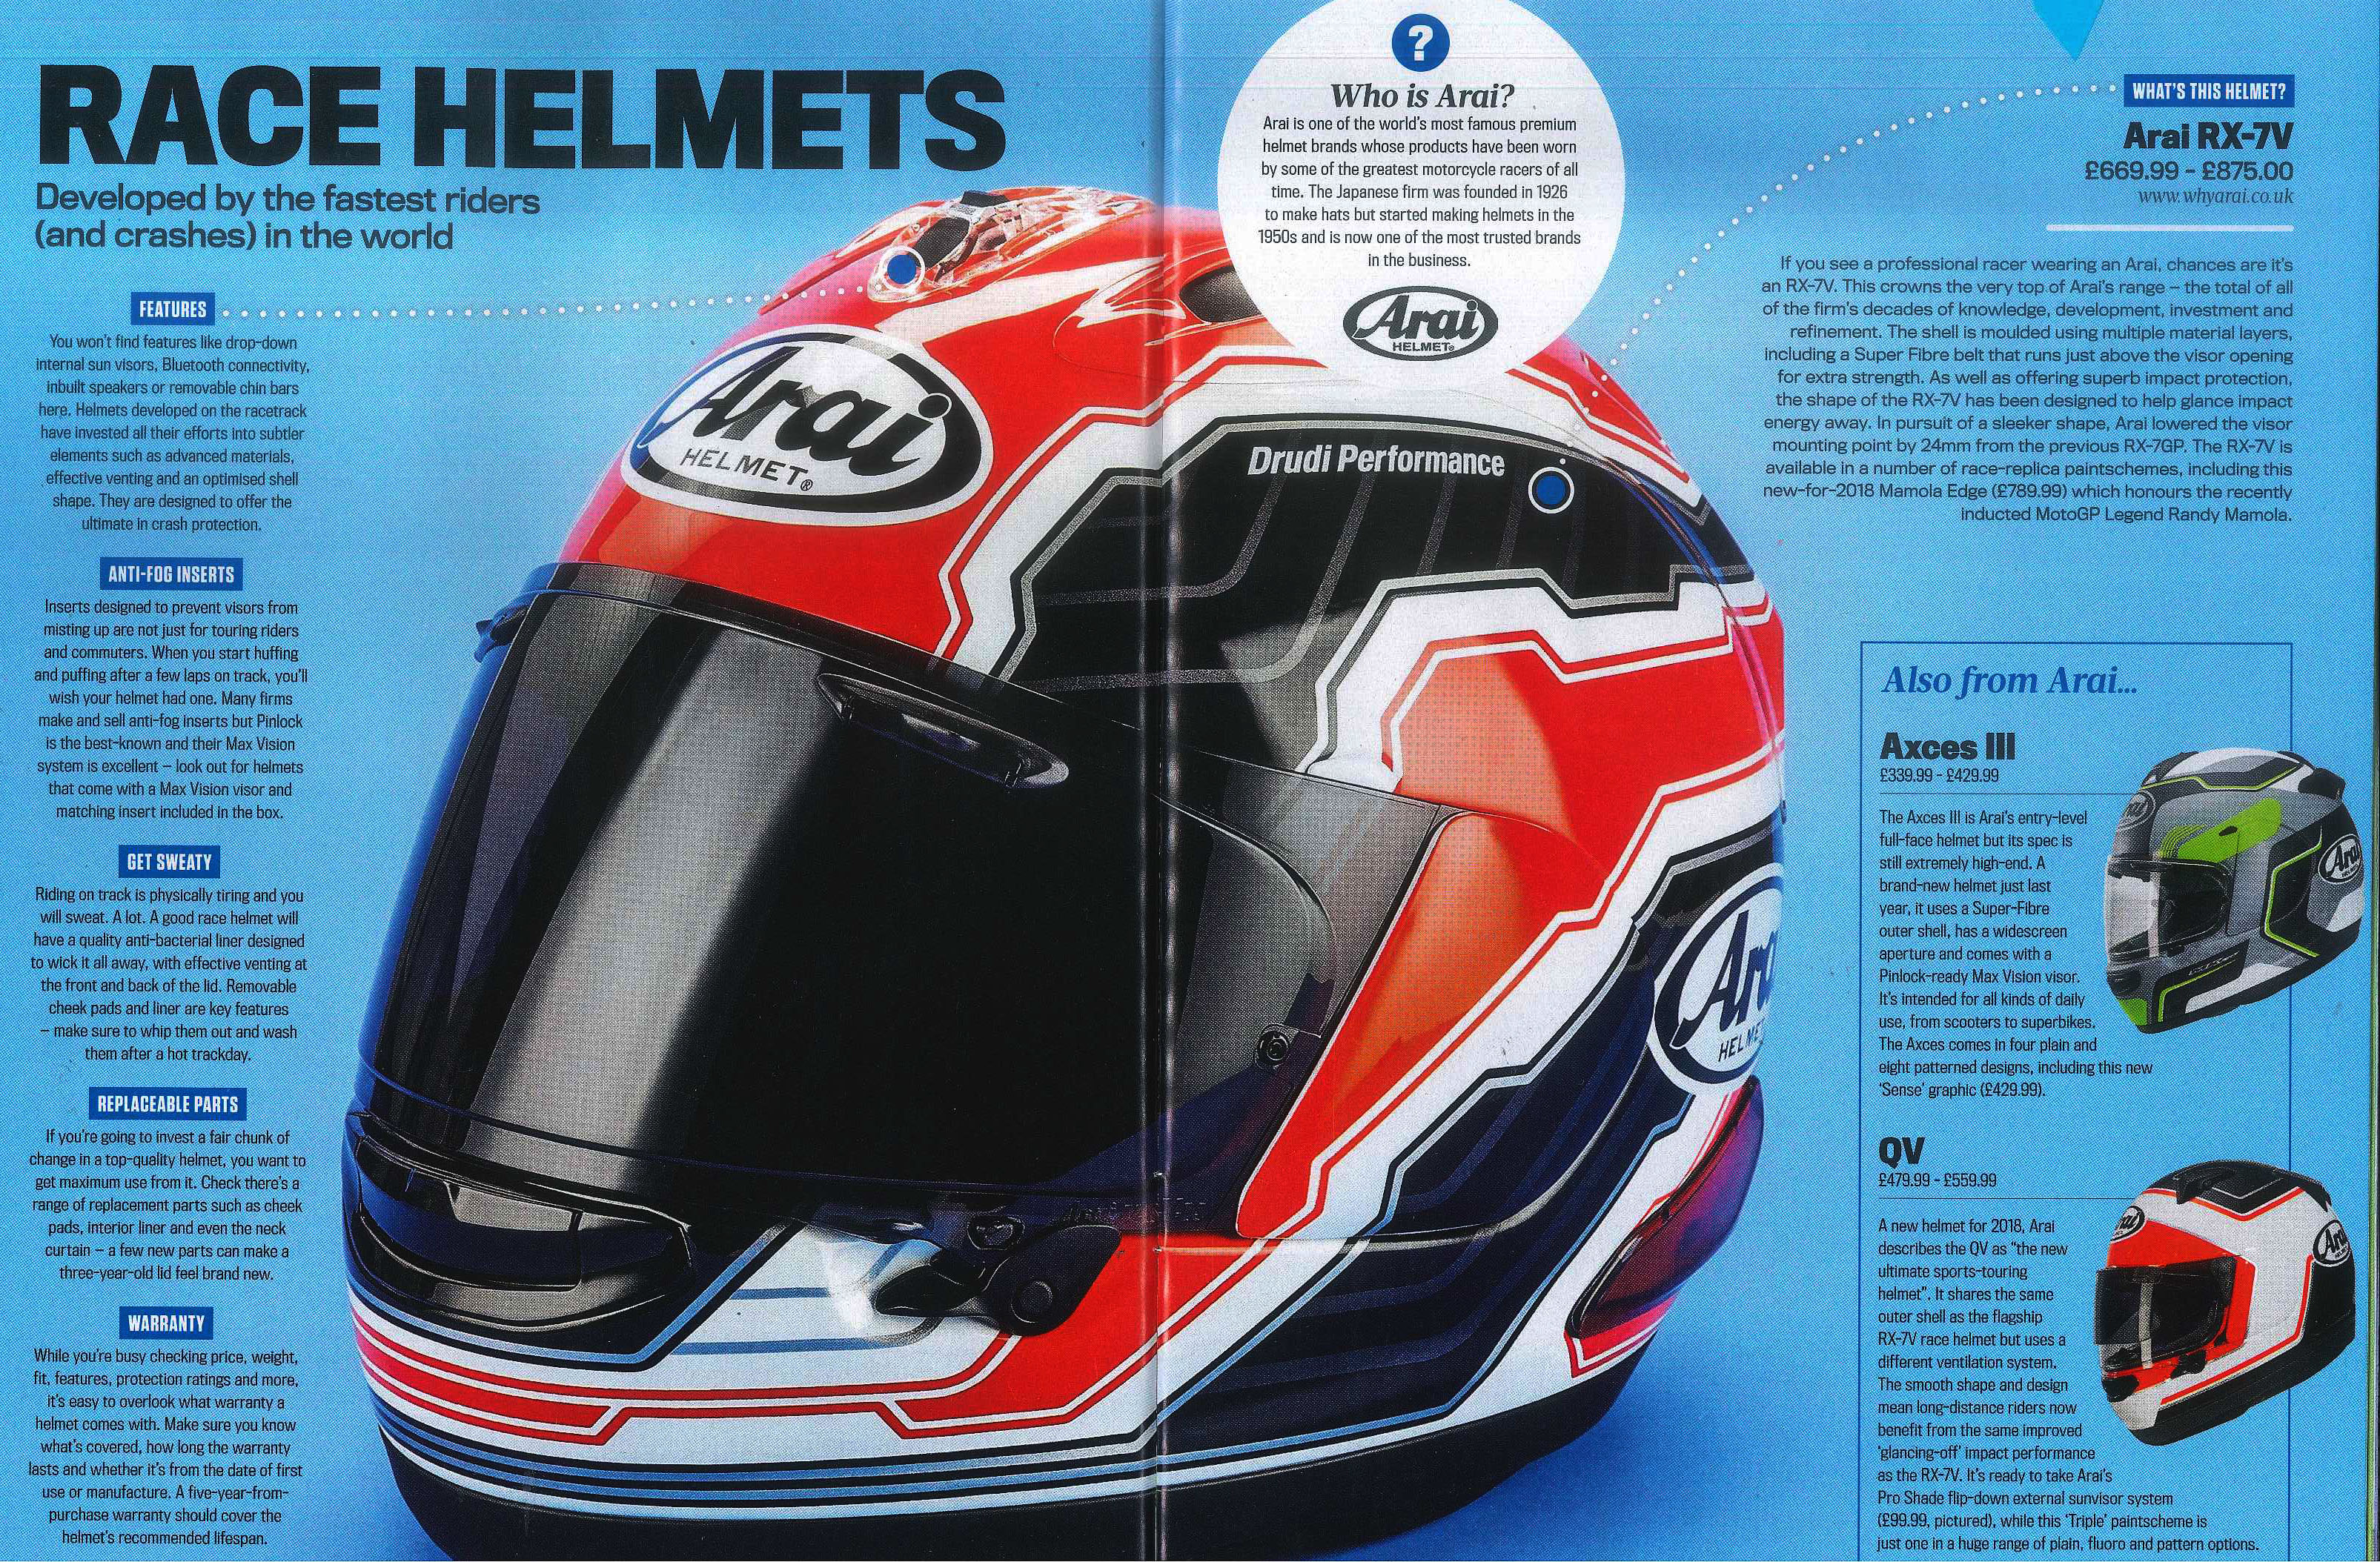 7bbdb4a3 ARAI Media Features. Suppliers of Motorcycle Leathers, Textiles ...